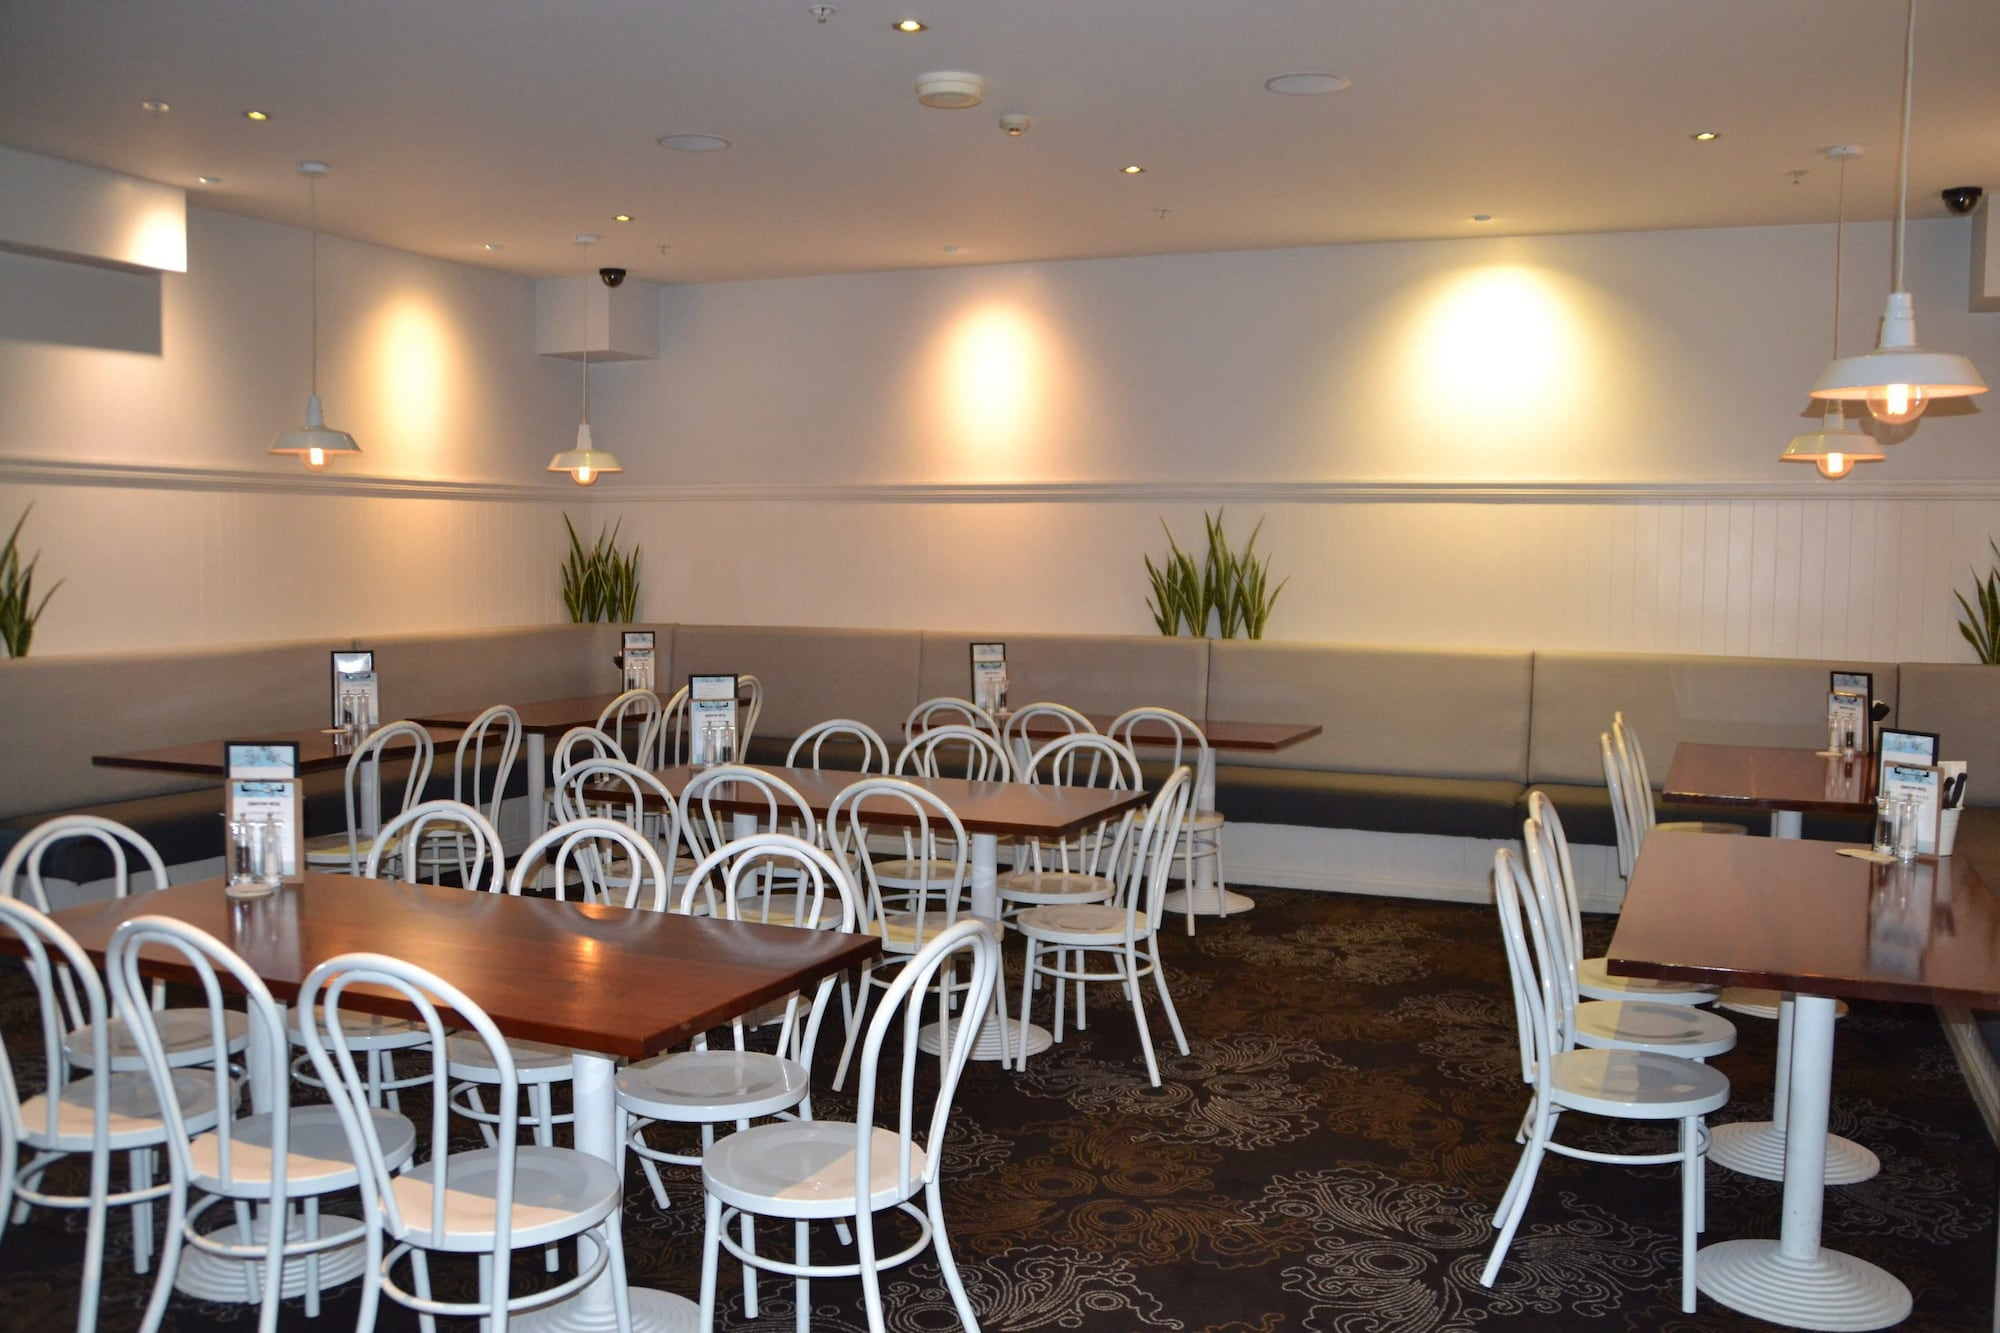 Coniston Hotel Wollongong, Wollongong - Inner